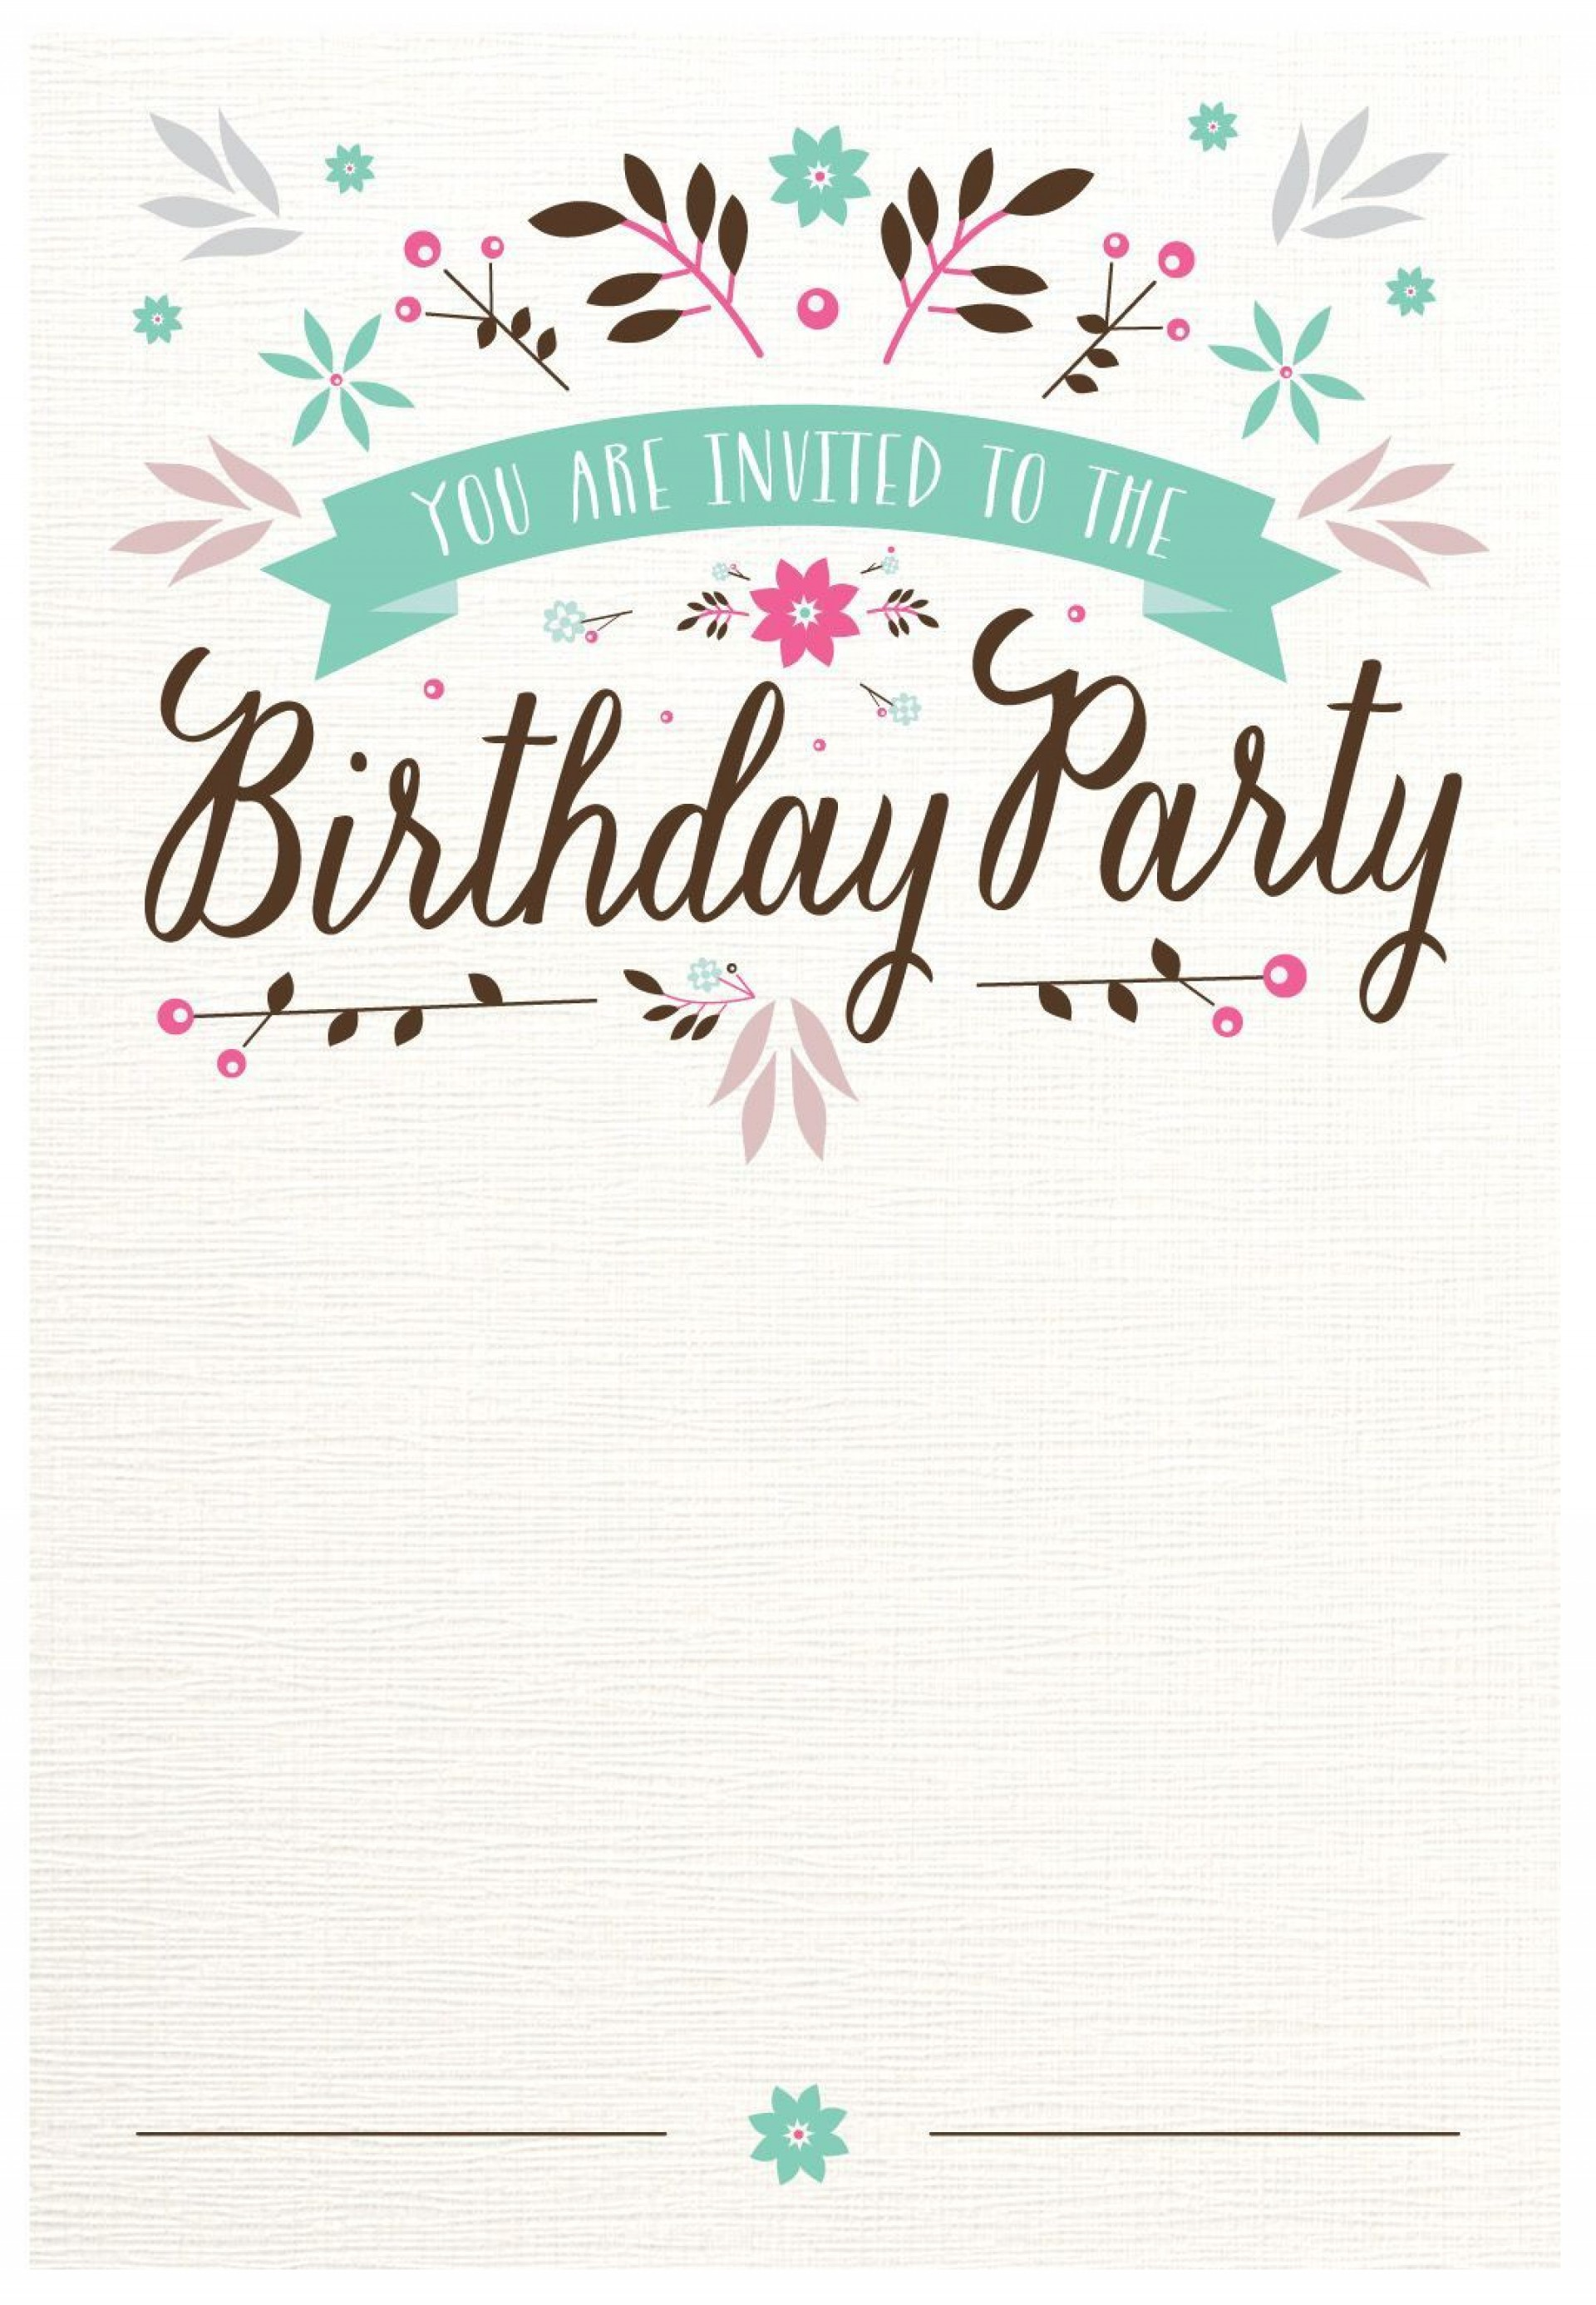 002 Surprising Free Birthday Card Invitation Template Printable Picture 1920